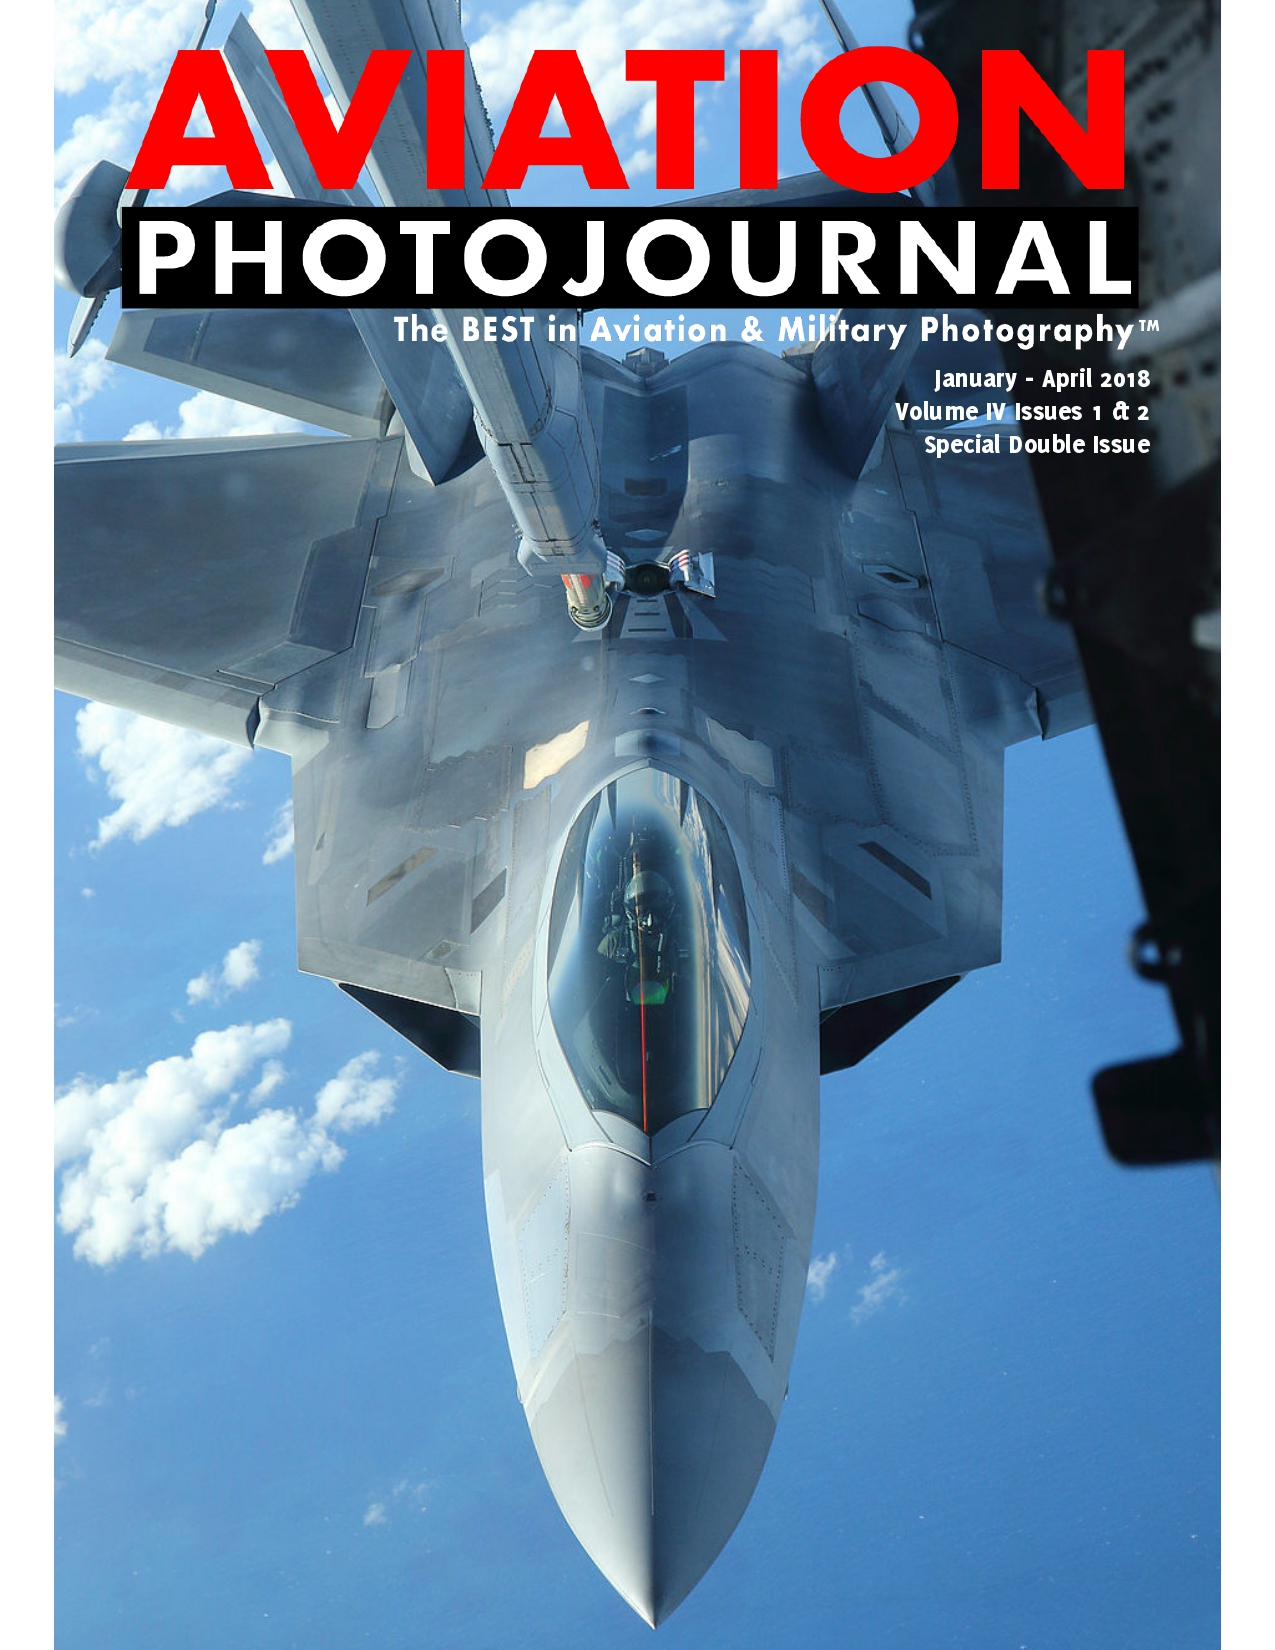 Aviation+Photojournal+January+-+April+2018-3_page-0001